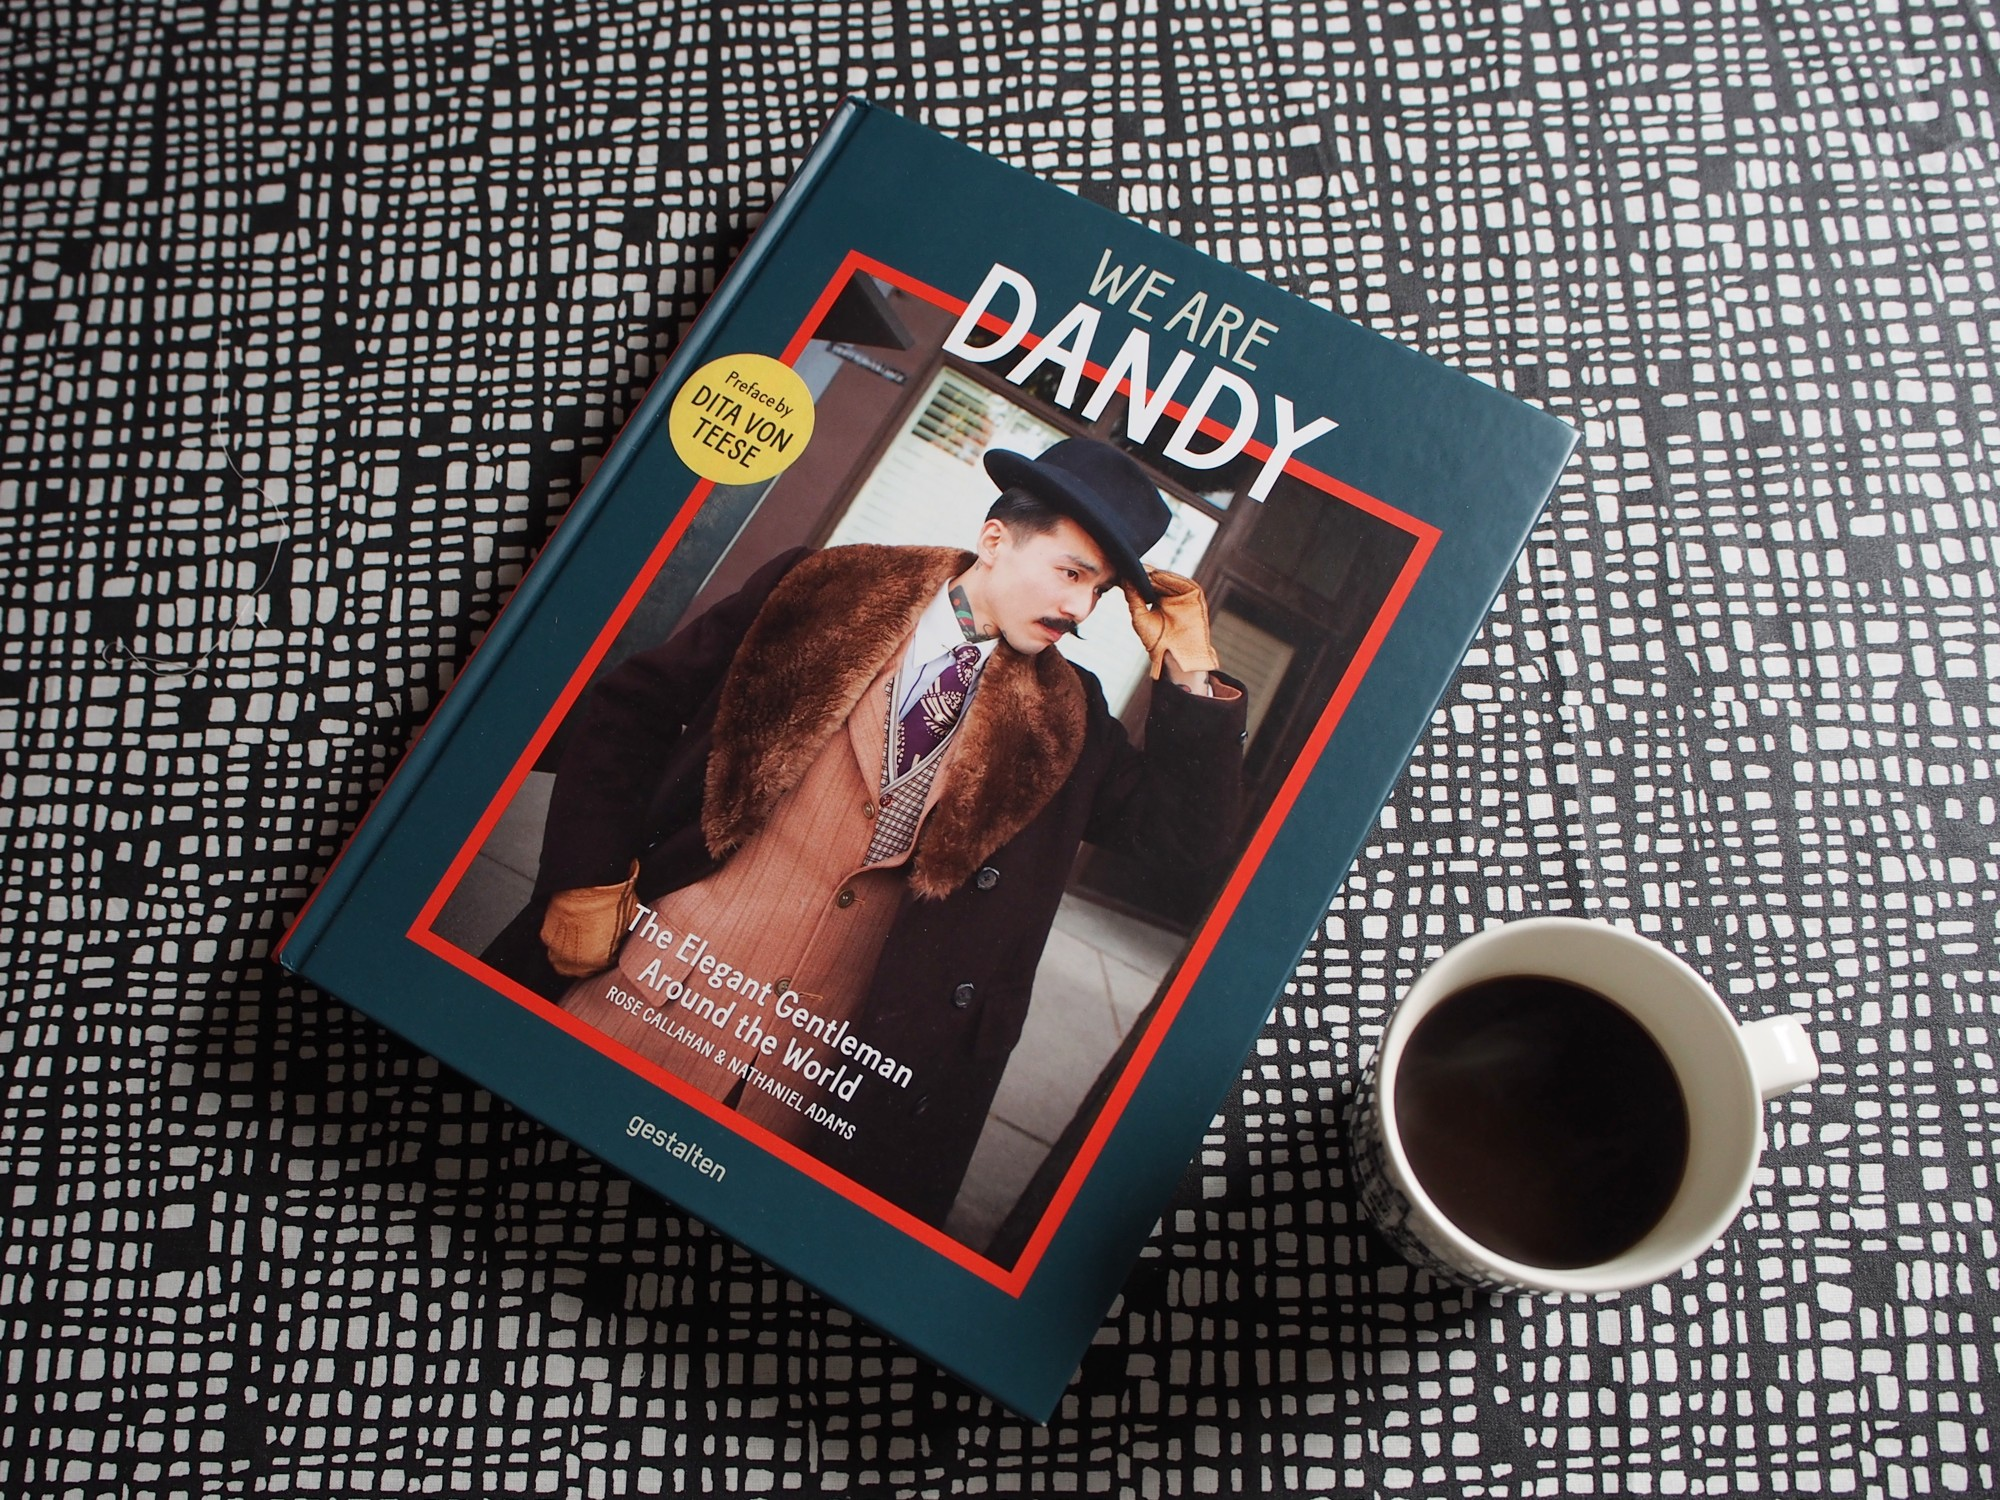 """We Are Dandy"" by Rose Callahan and Natty Adams : A Review"